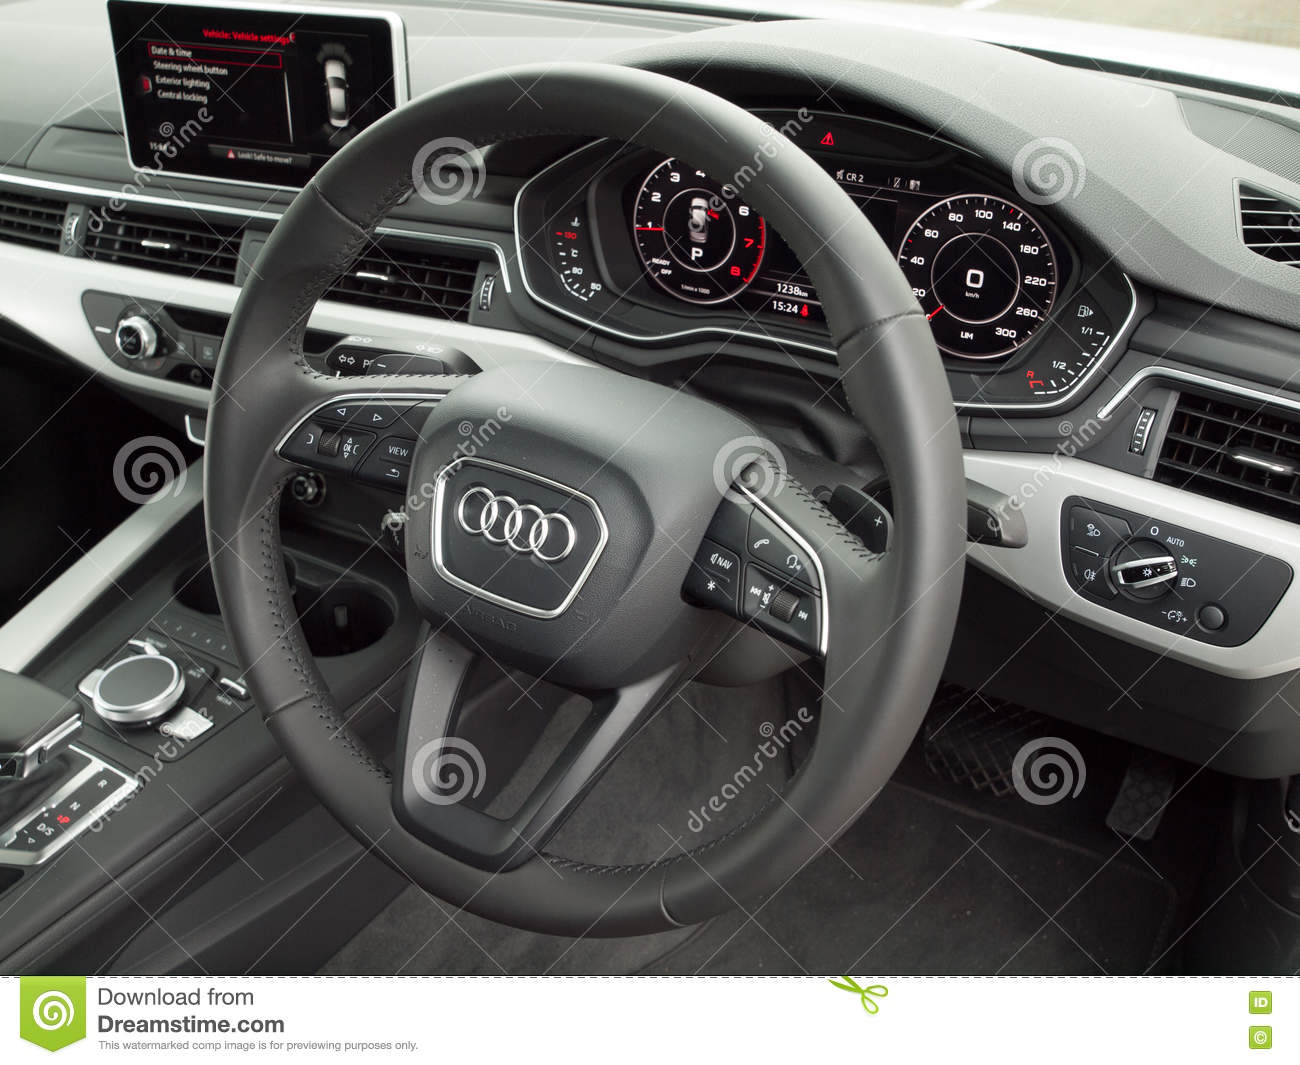 Audi A4 2016 Interior Editorial Photography Image Of Design 77146687